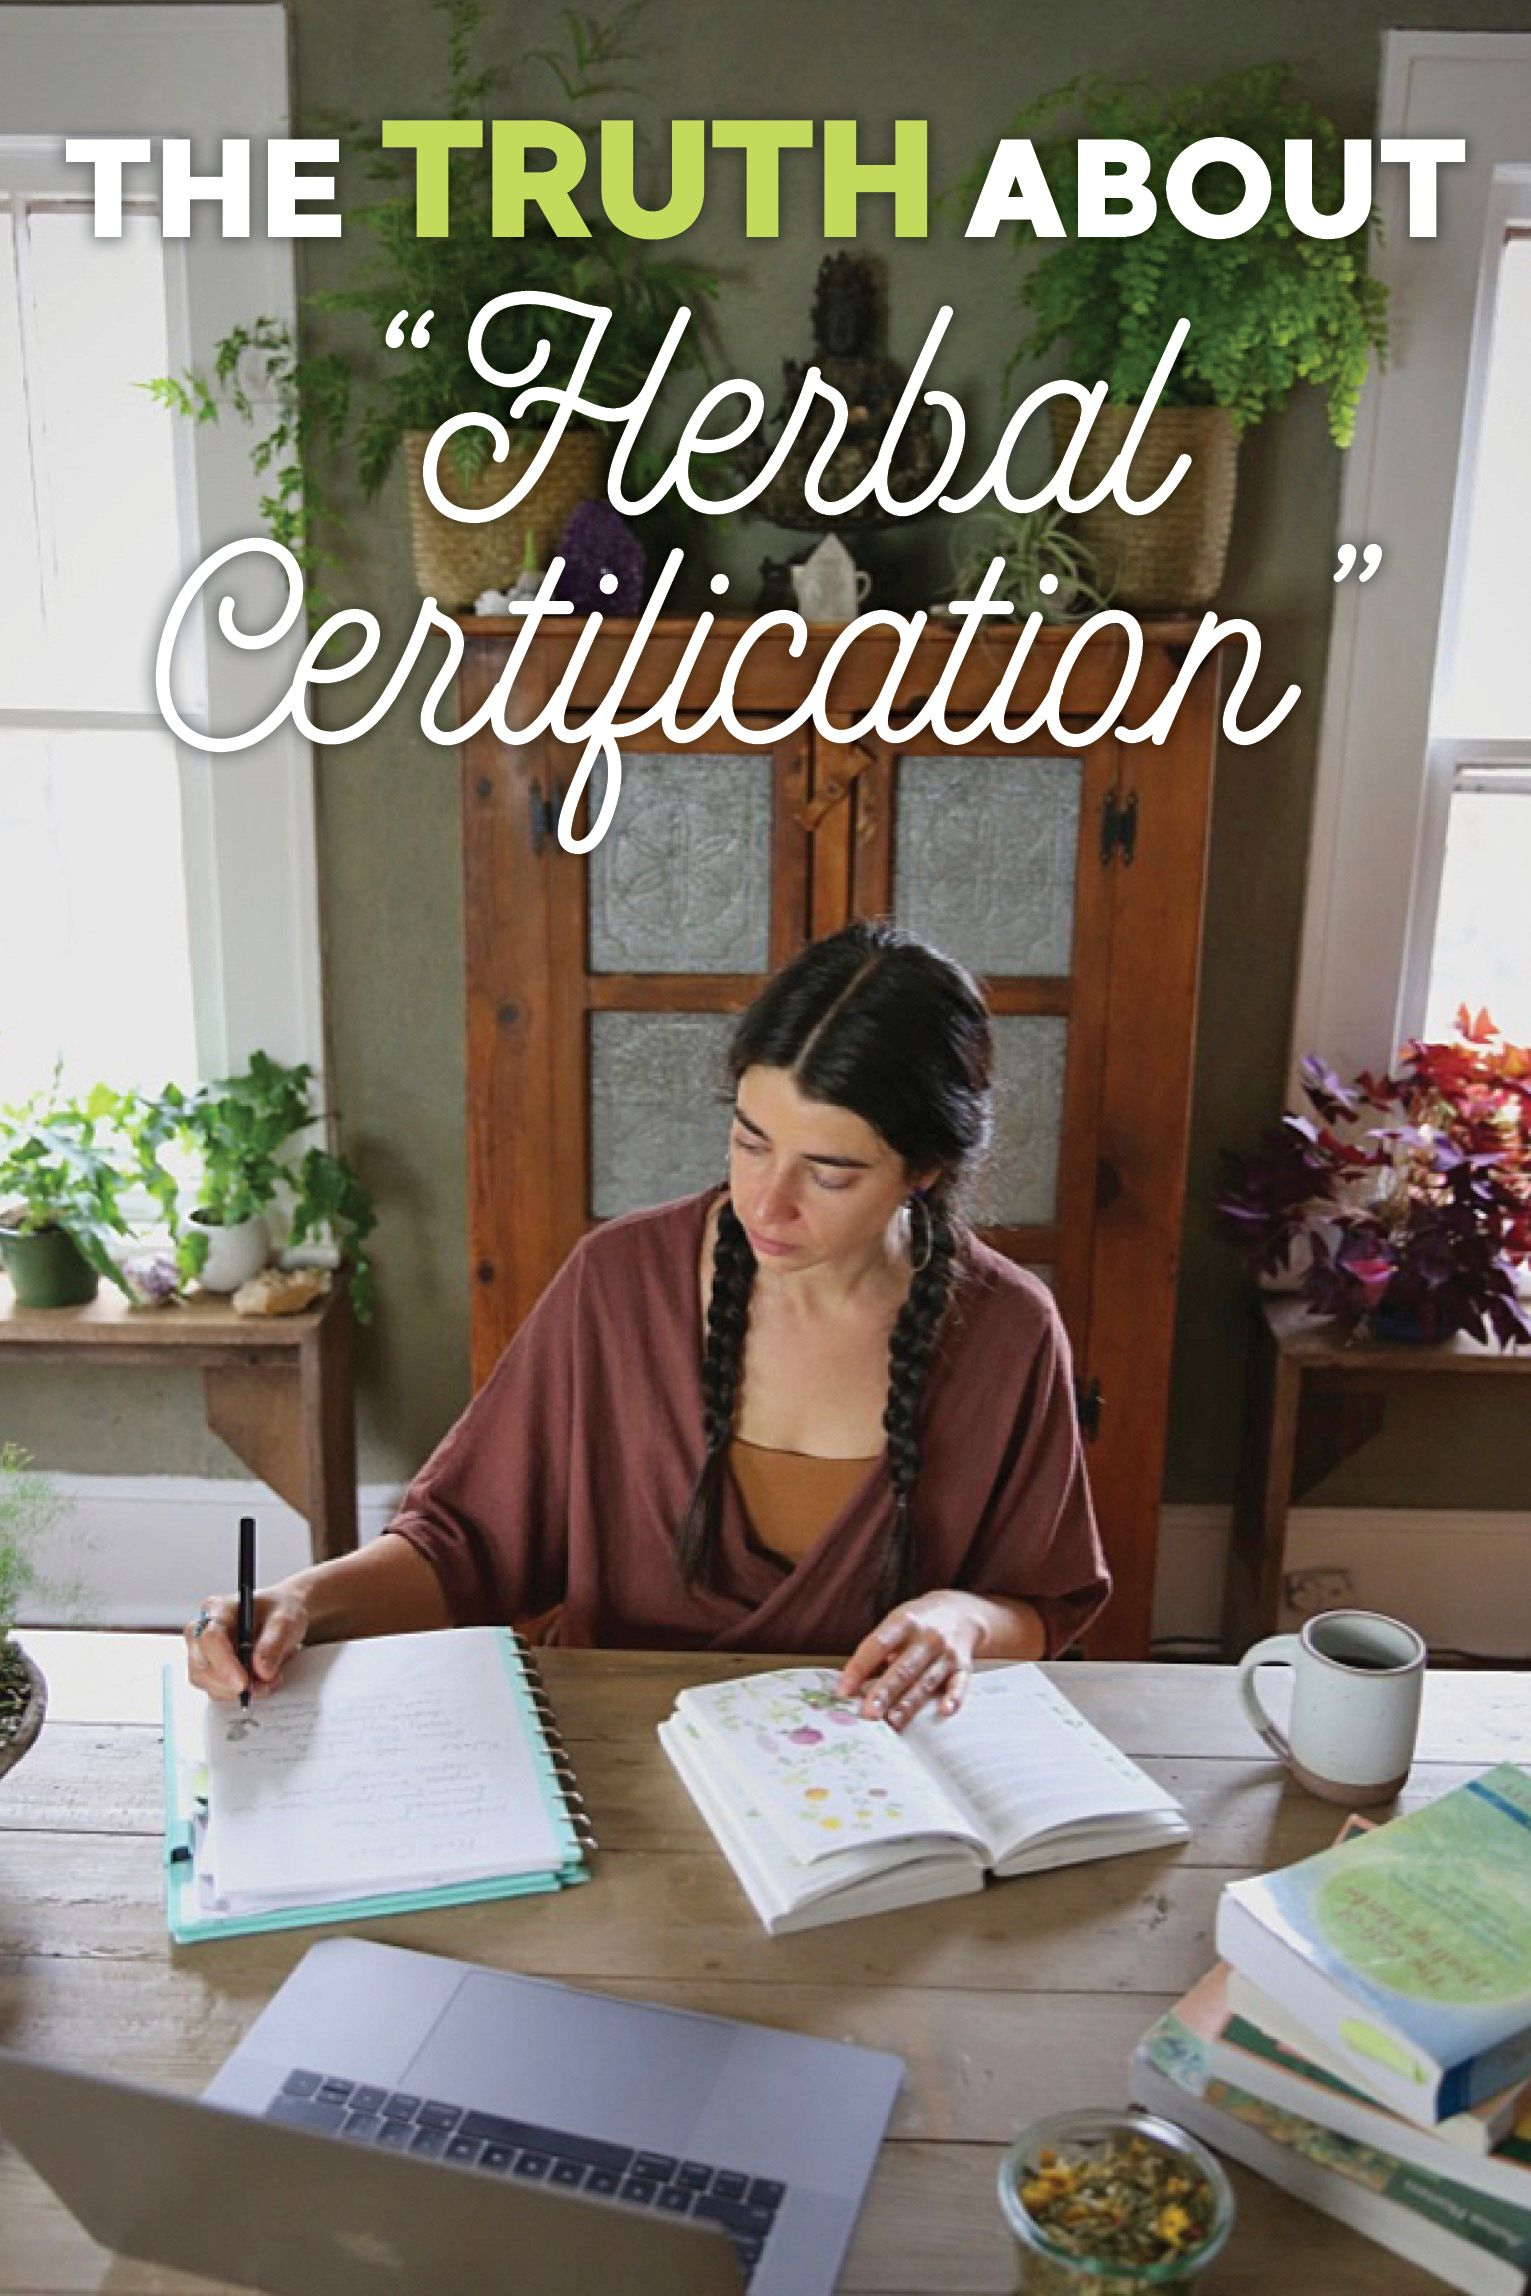 The Truth About Herbal Certification | Blog Castanea